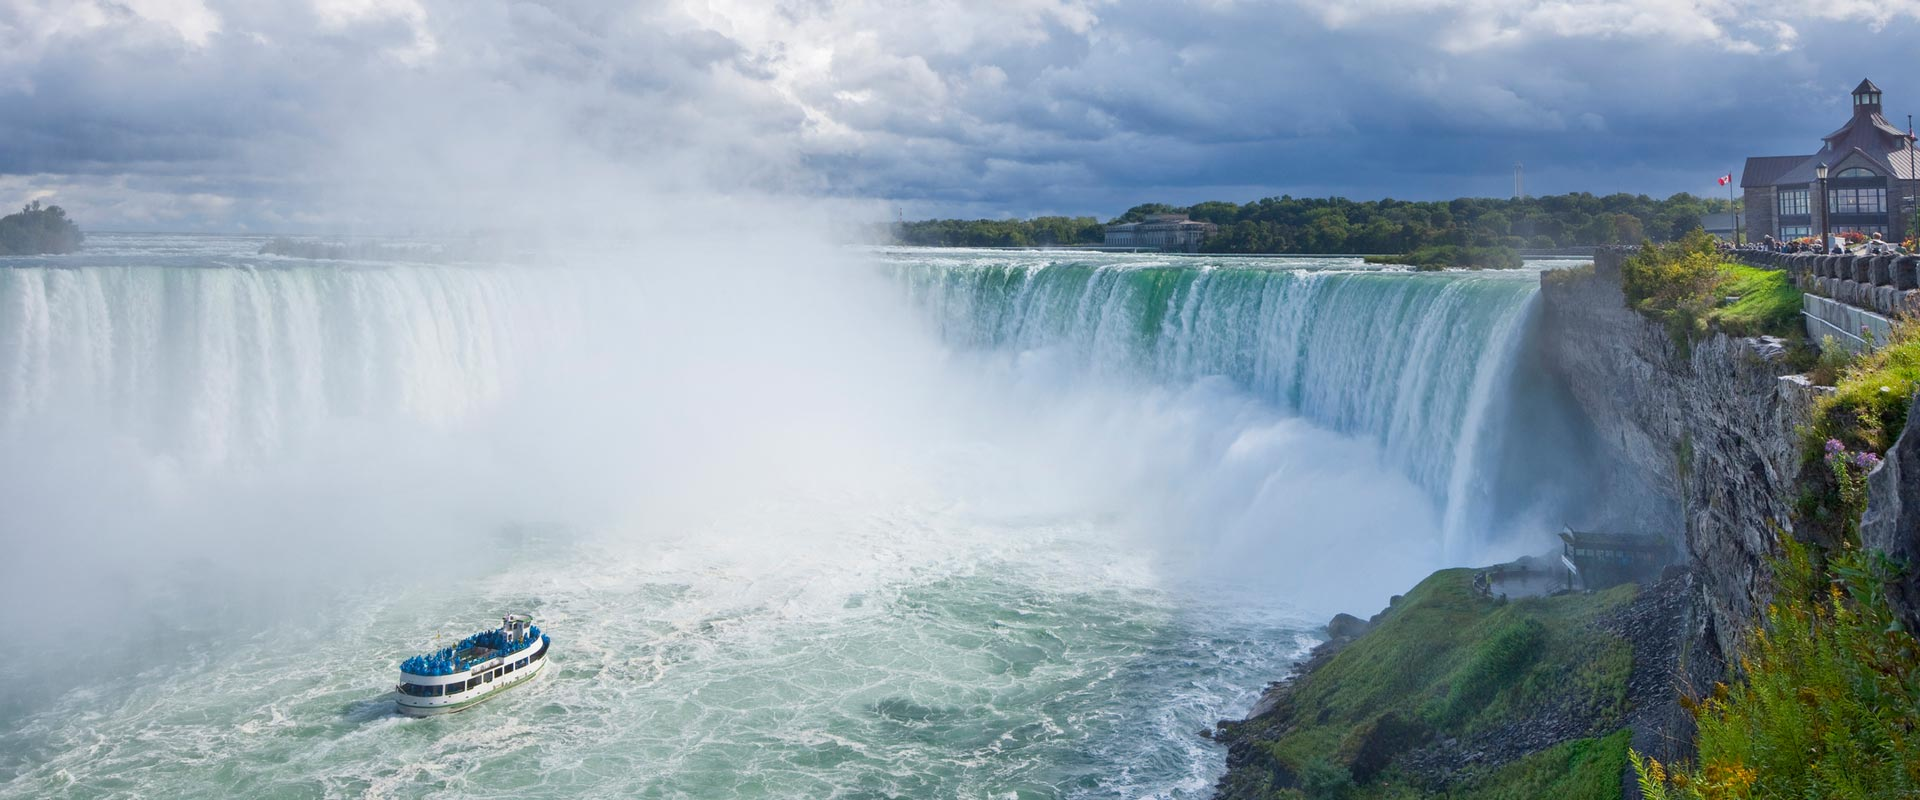 What Can You Do At The Niagara Falls